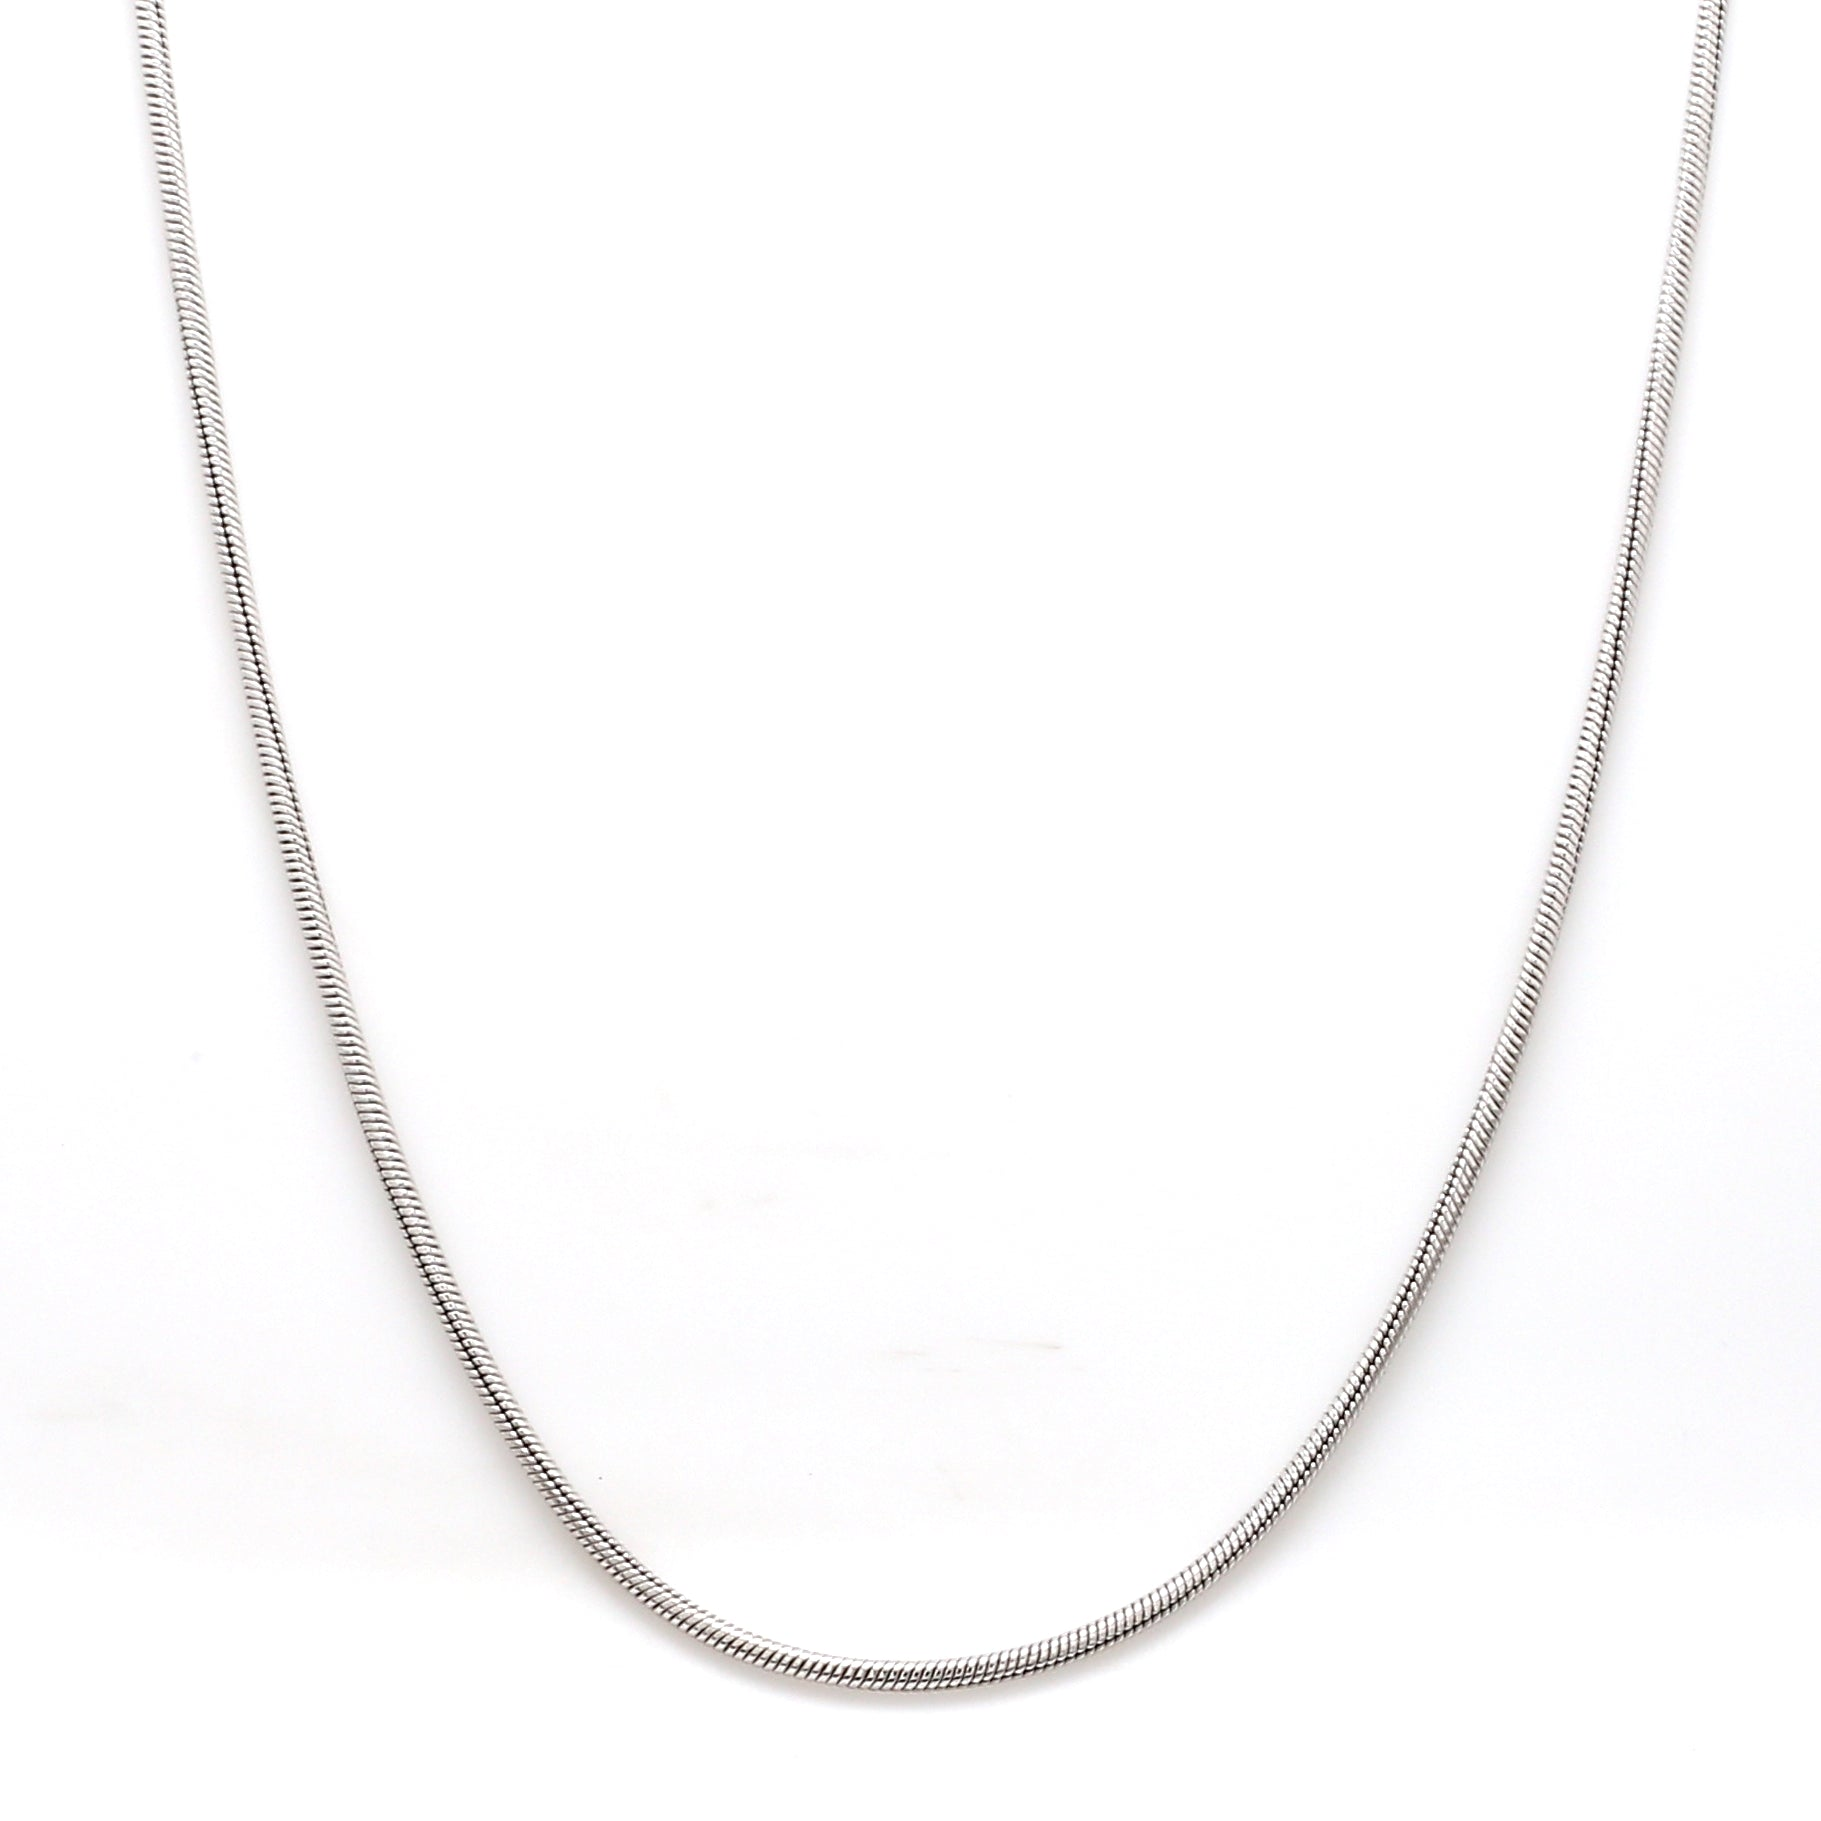 Thicker Plain Platinum Snake Chain for Men SJ PTO 712-A